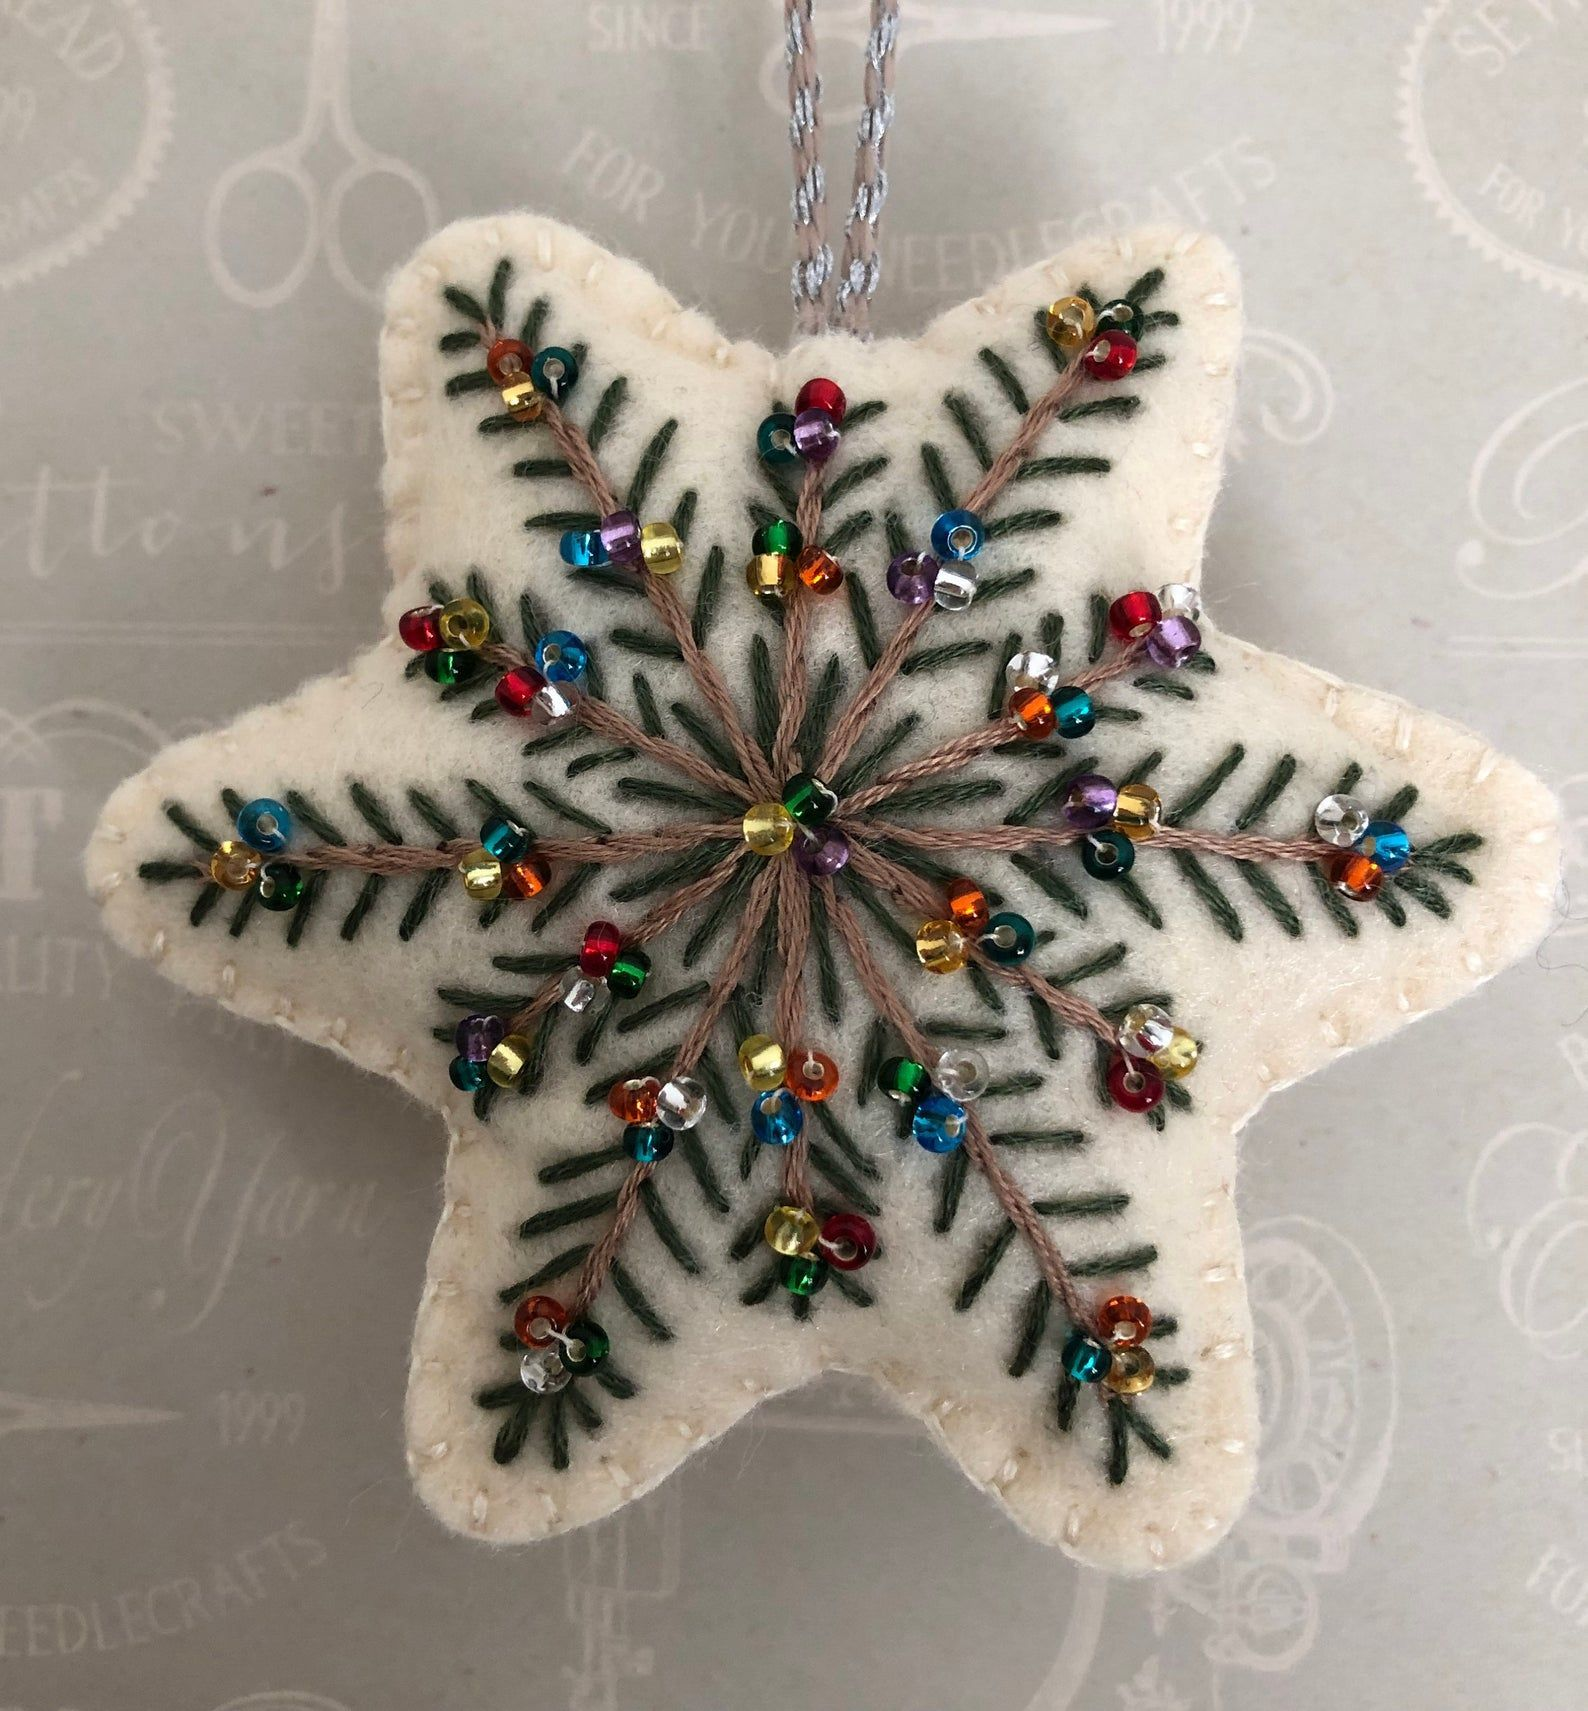 Handmade Felt Star Christmas Ornament Embroidered With Individually Hand Sewn Bead Felt Crafts Christmas Diy Felt Christmas Ornaments Felt Christmas Ornaments